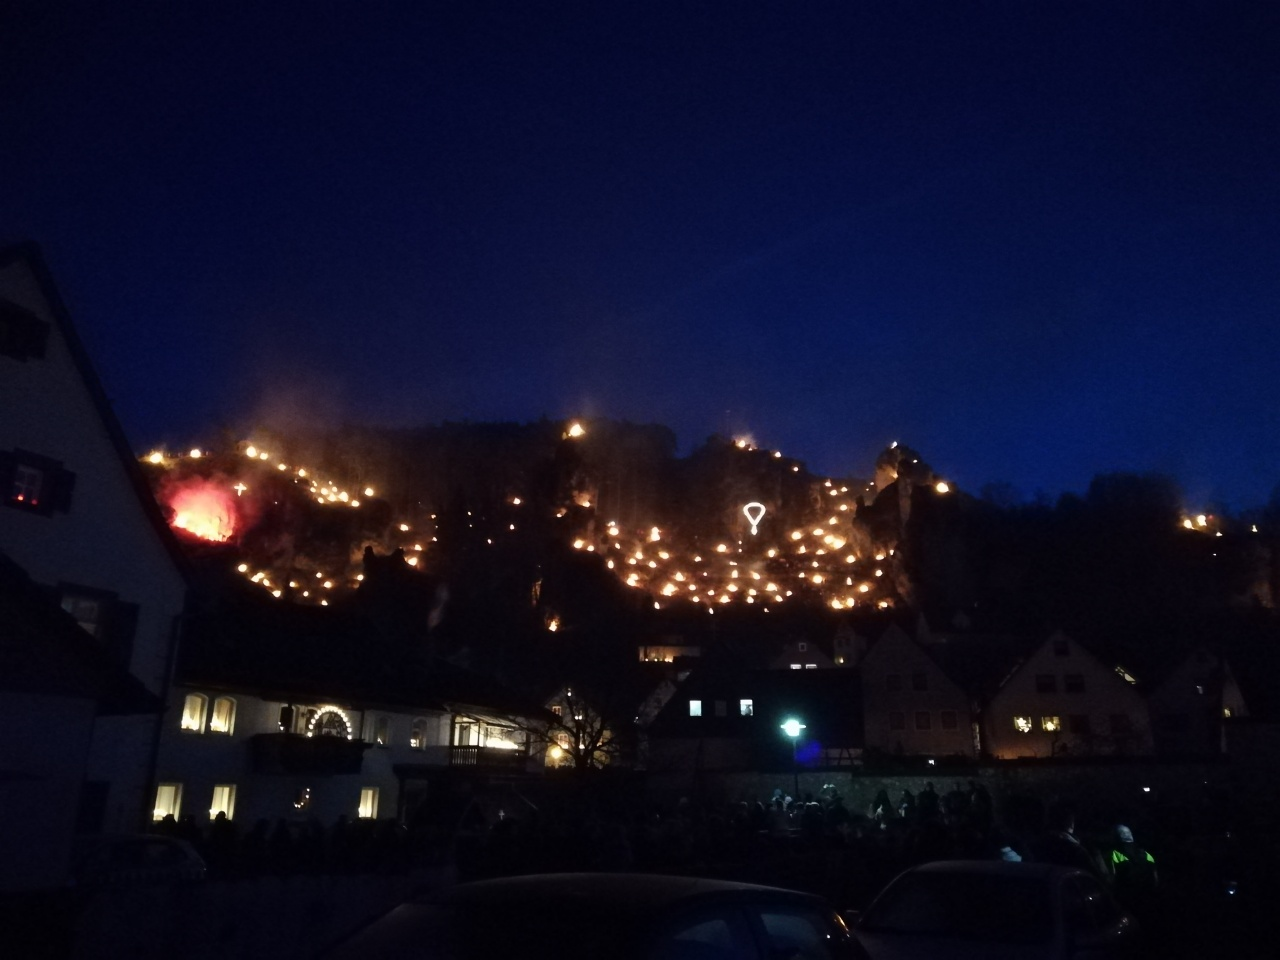 Bergfeuer am Lichterfest in Pottenstein